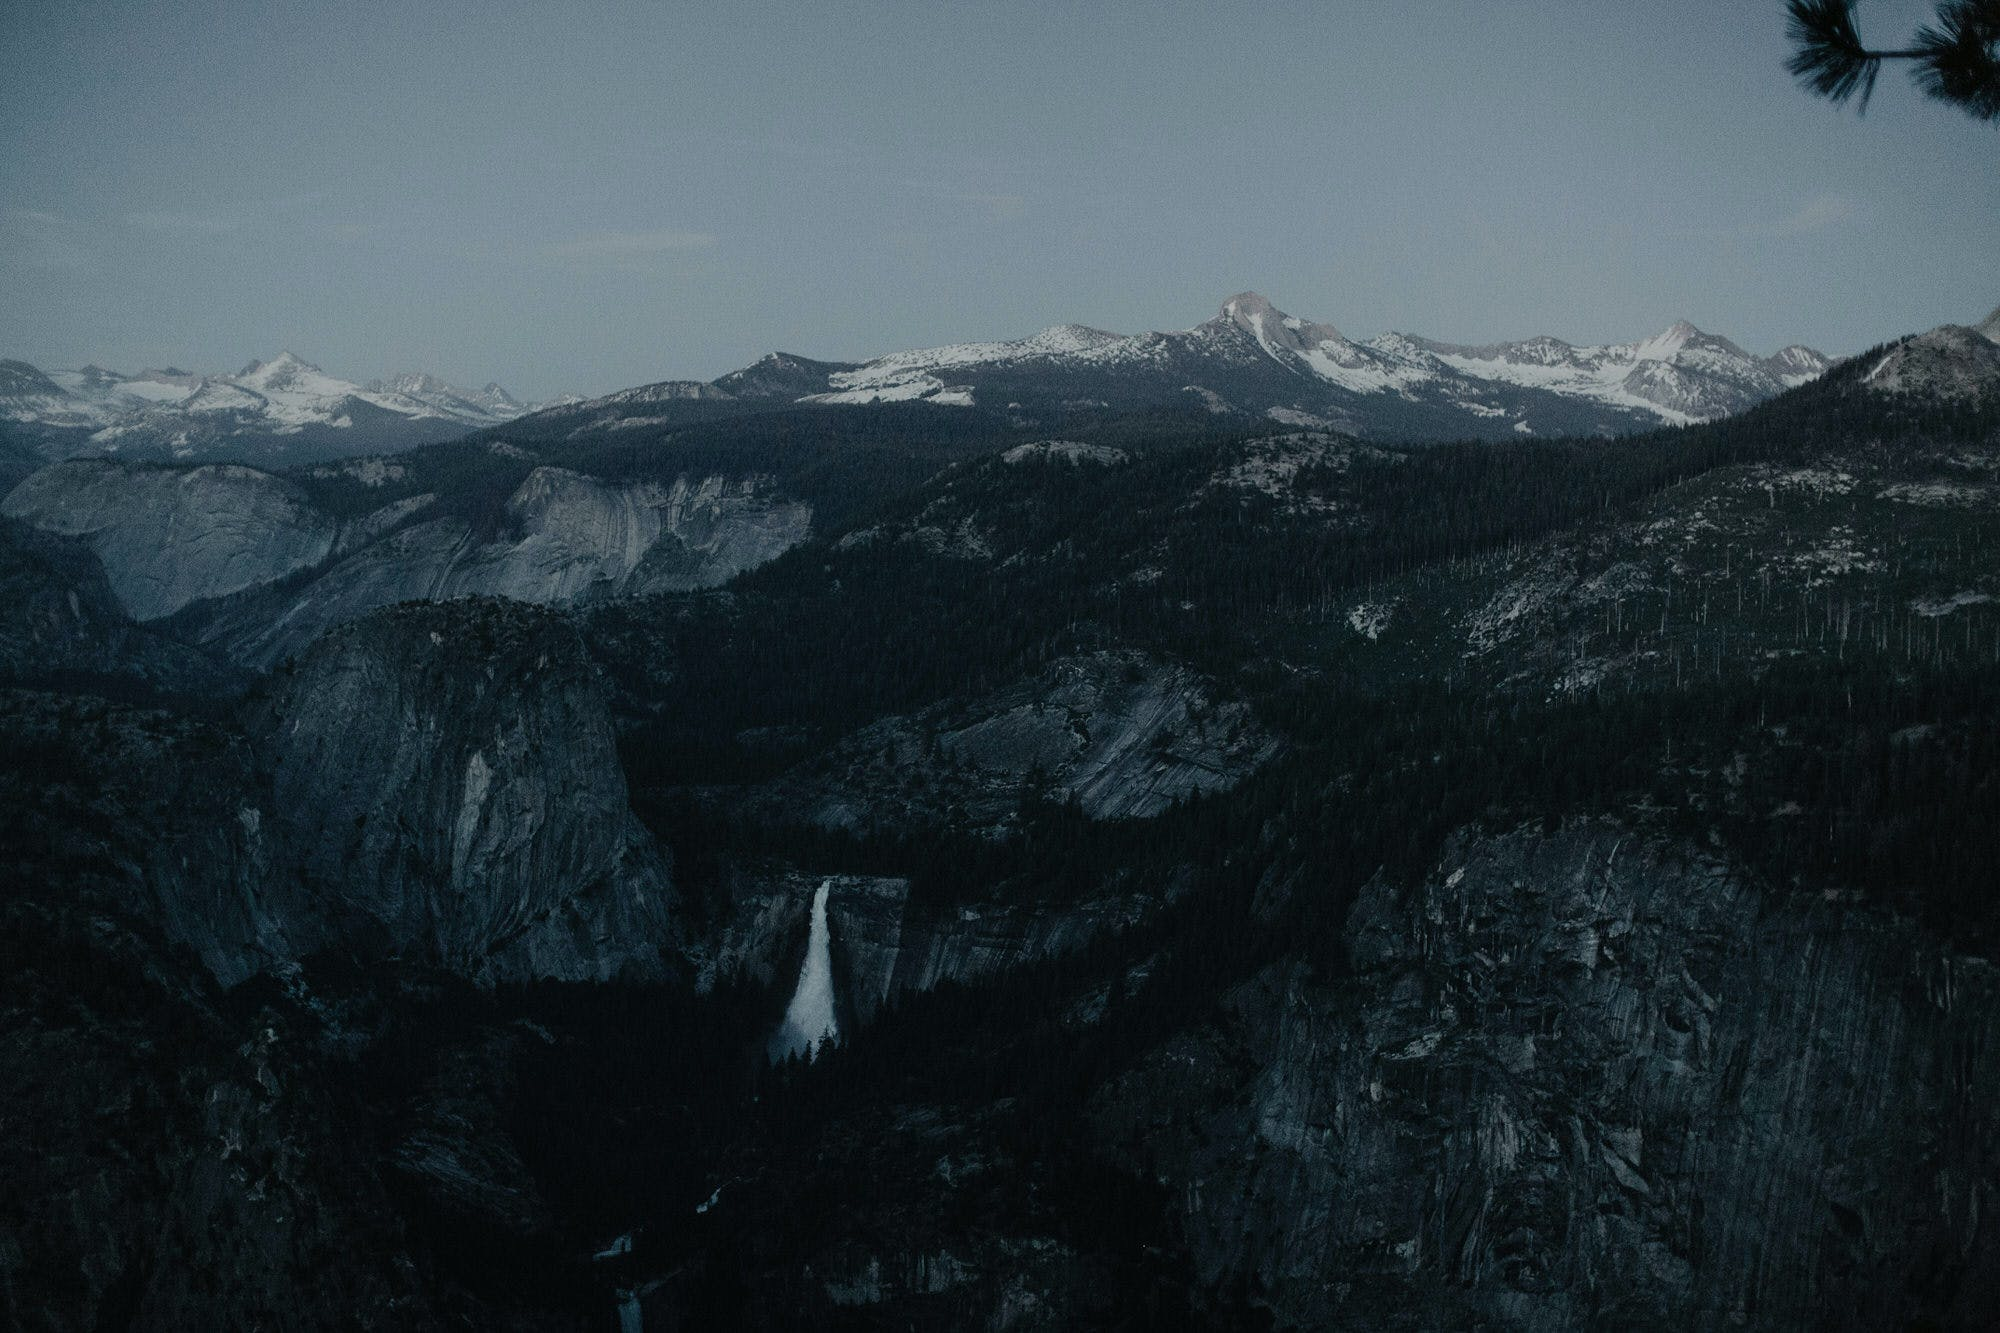 dusk waterfall picture of yosemite